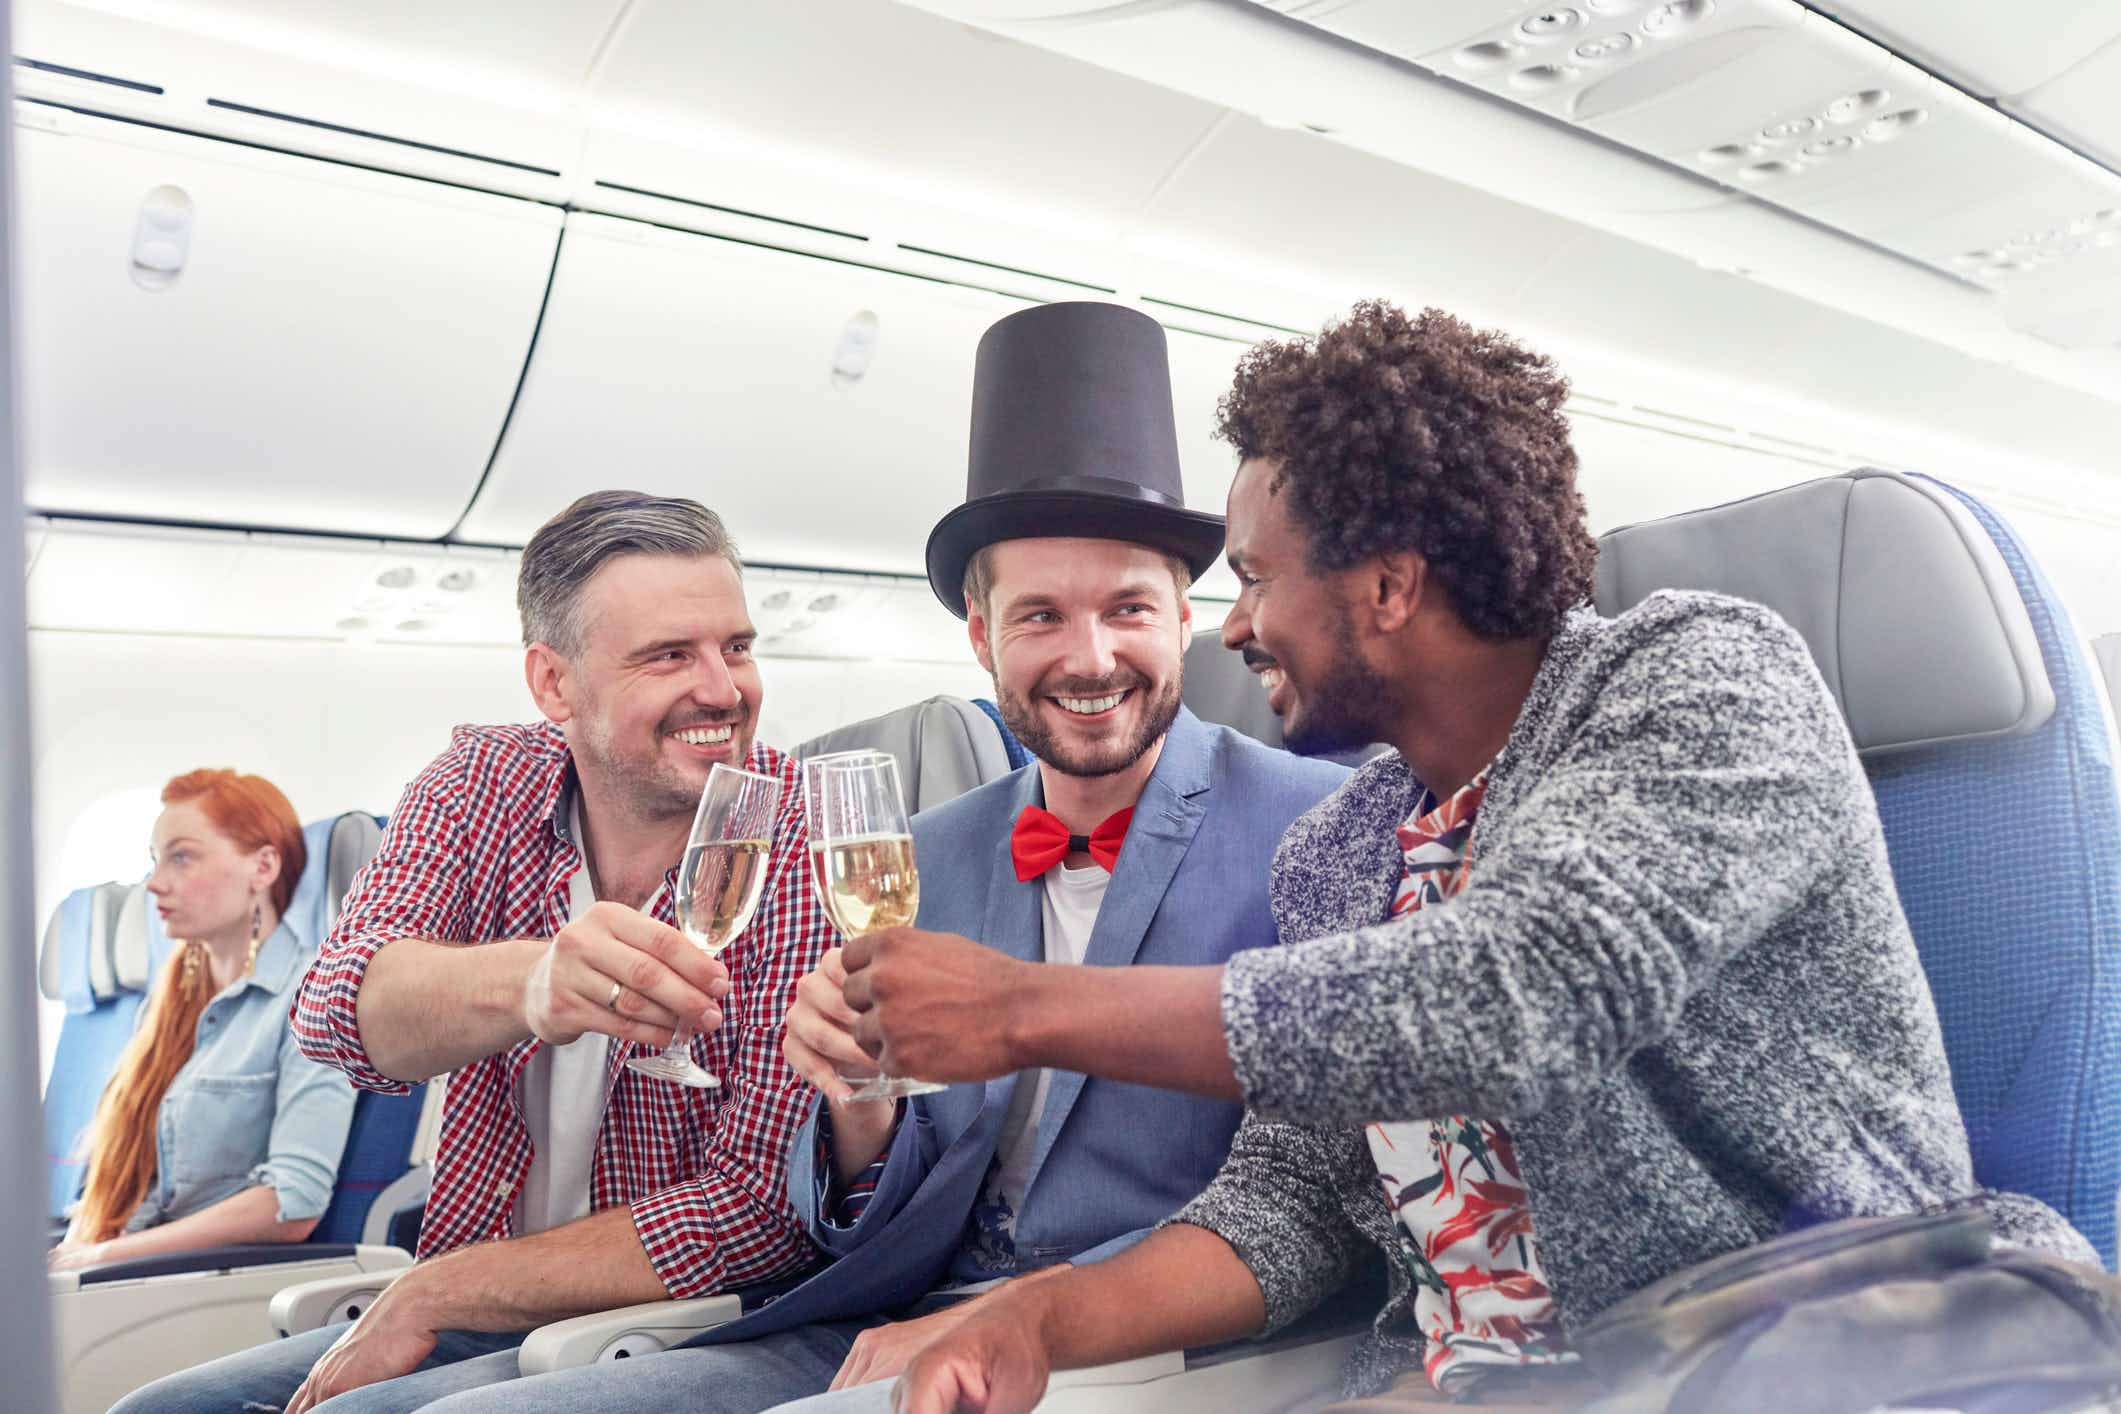 Why getting too drunk on your flight could cost you up to £80,000